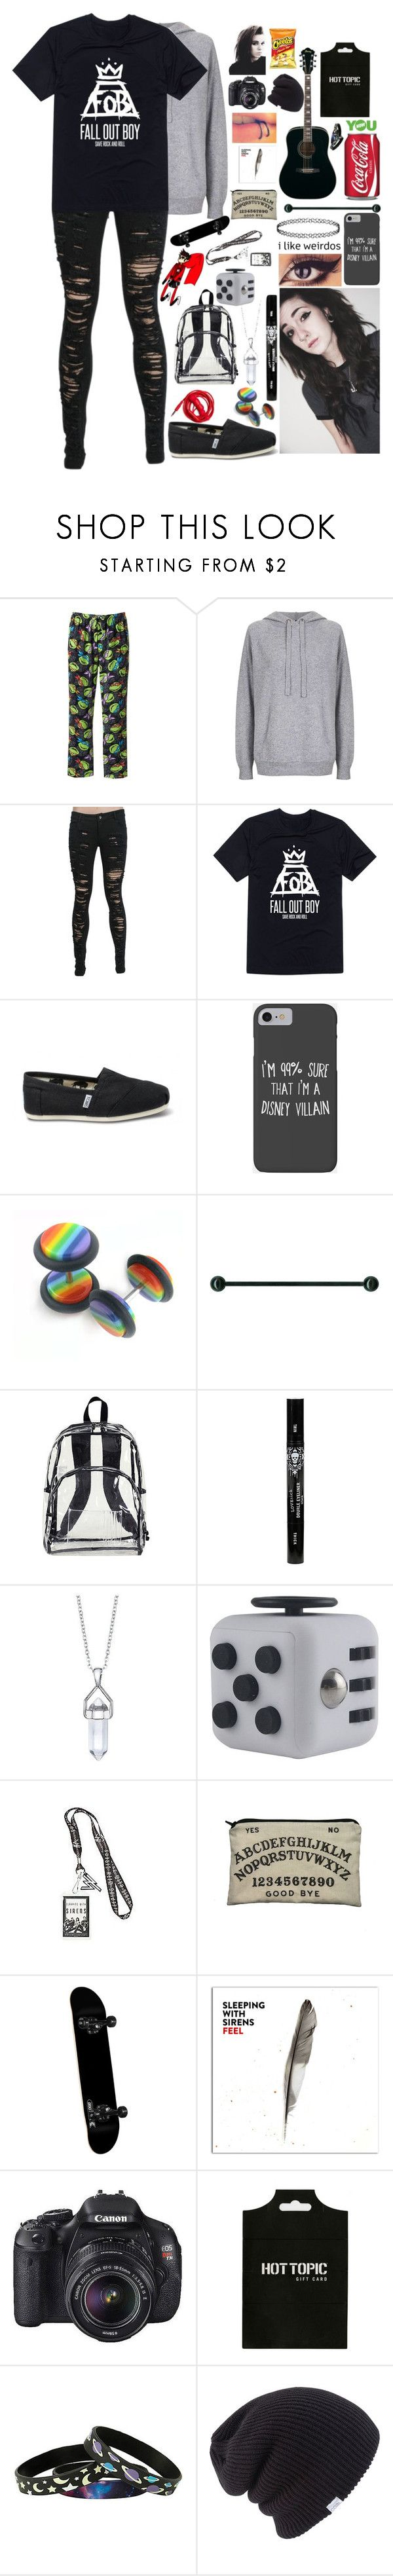 """""""Untitled #1465"""" by xxghostlygracexx ❤ liked on Polyvore featuring Topshop, TOMS, Disney, Urbanears, Eastsport, Eos, YOUNOW and Coal"""